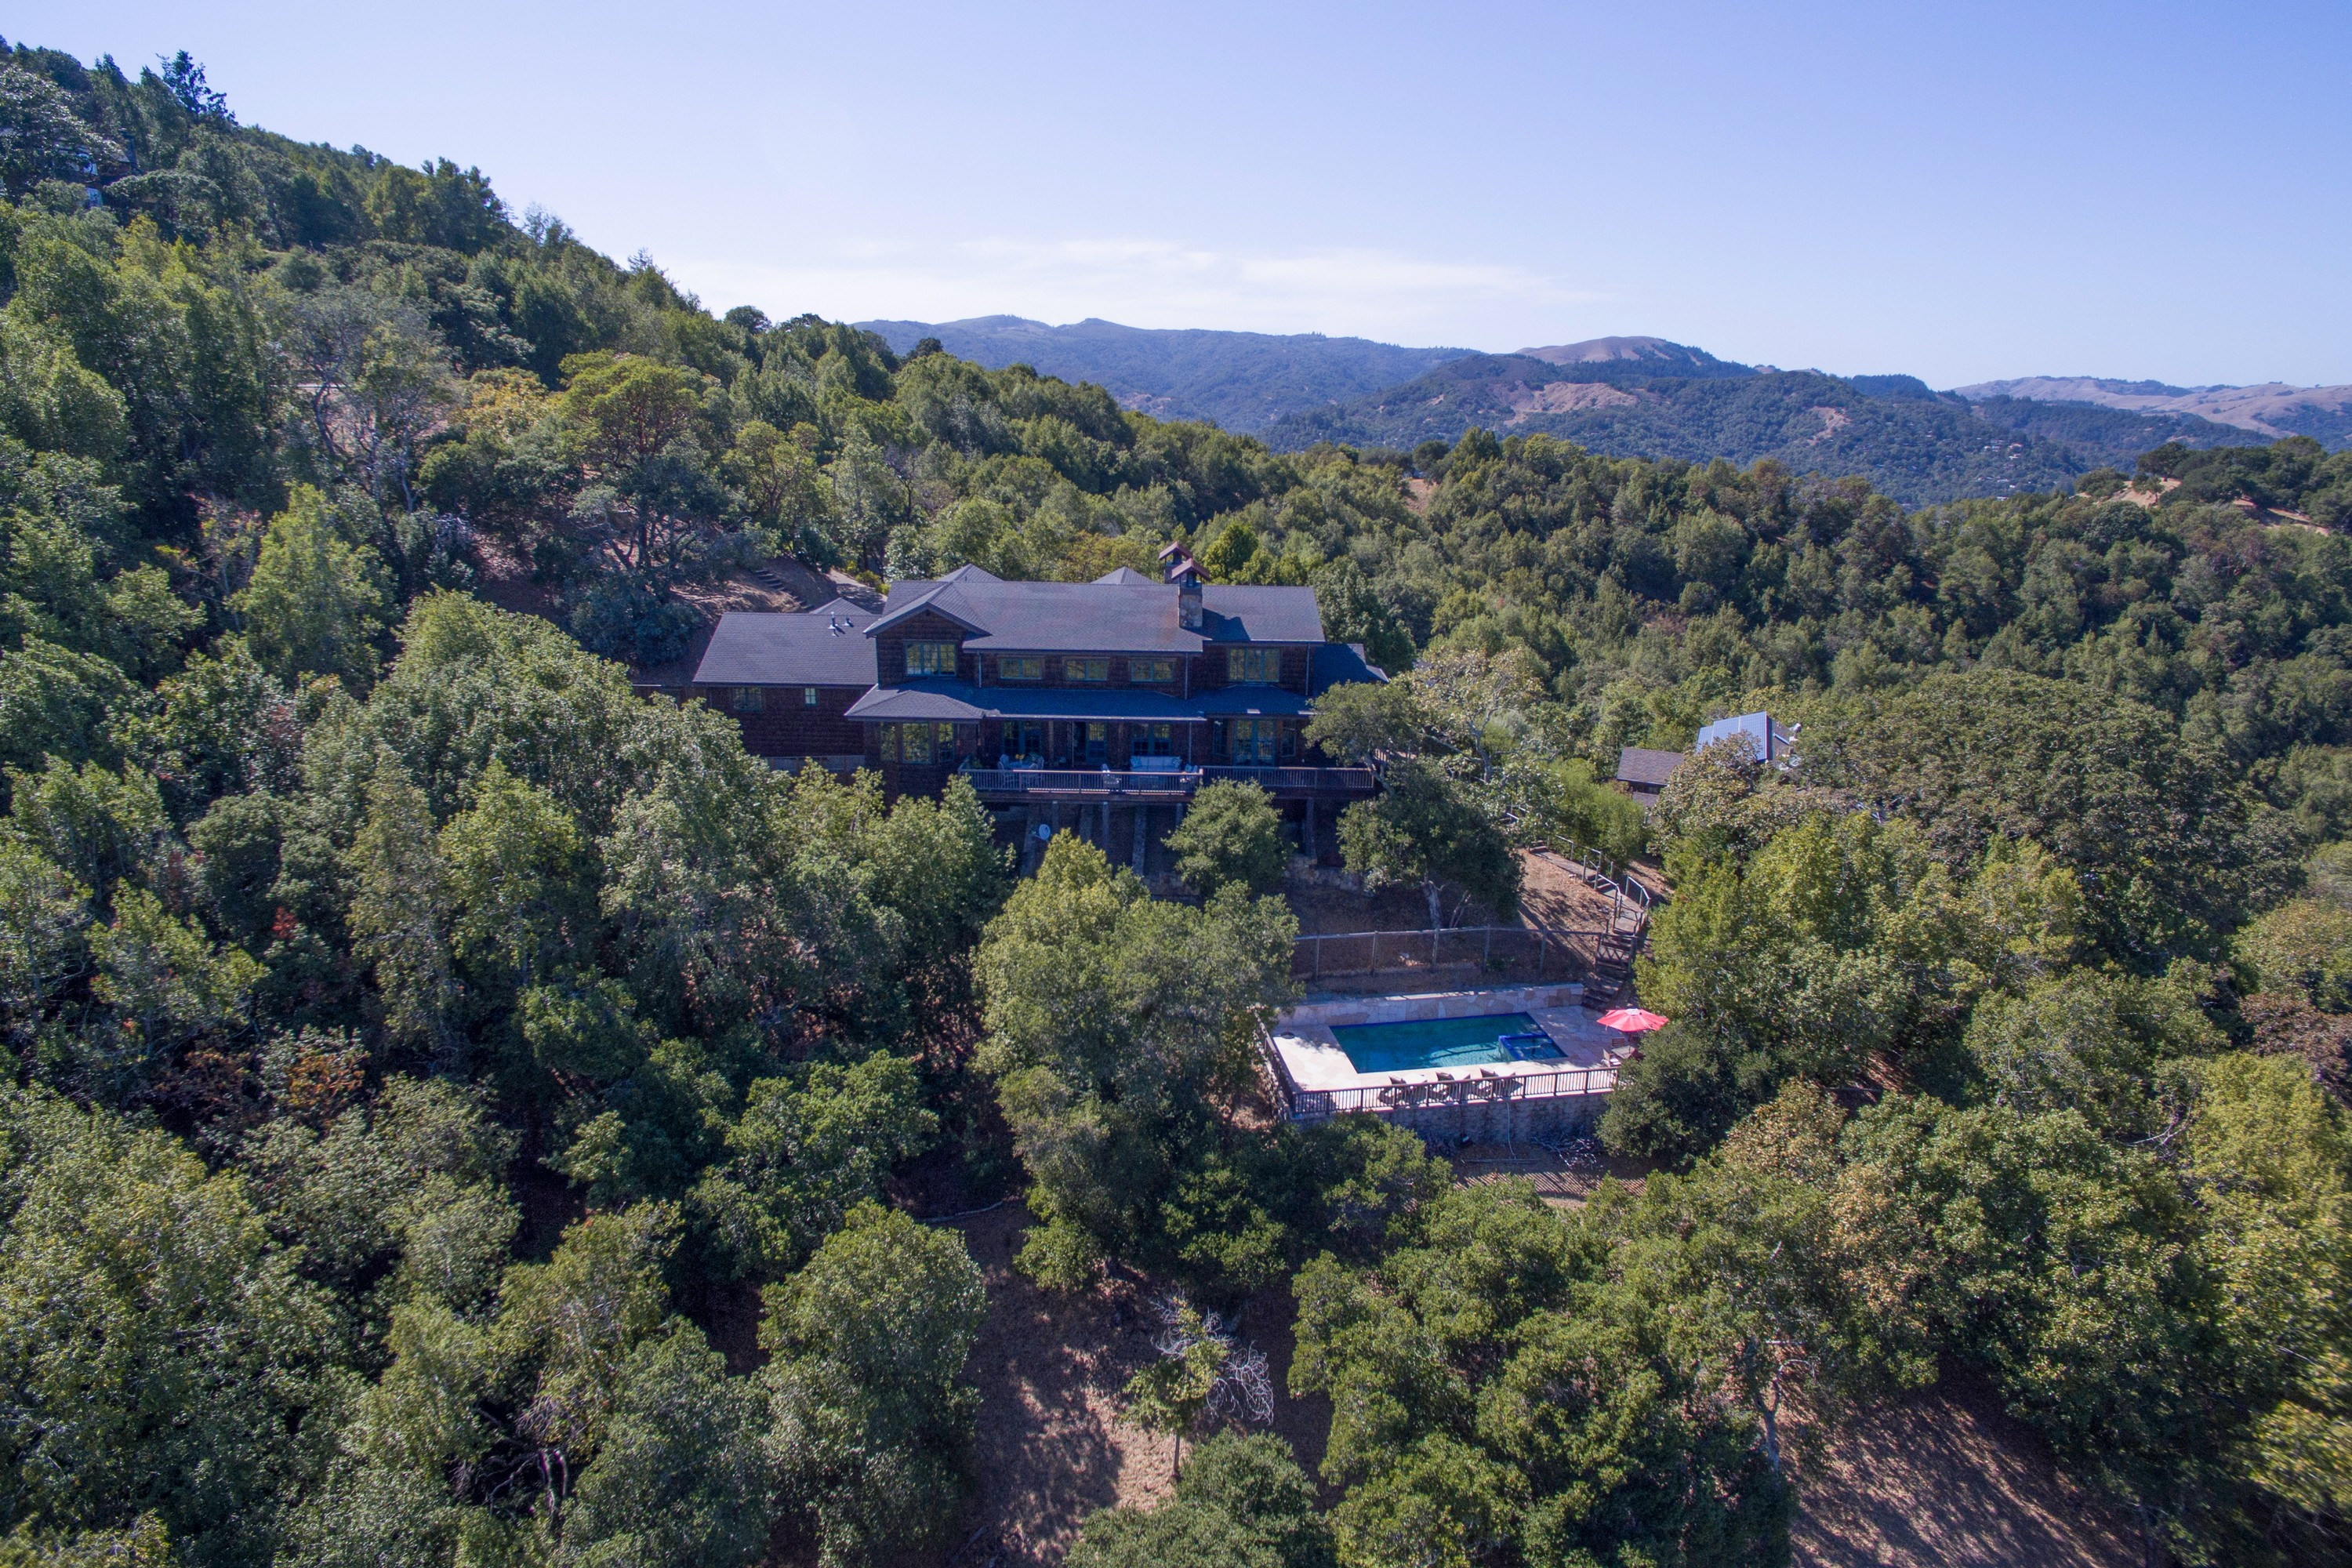 Single Family Home for Sale at Contemporary Hilltop Retreat 565 Oak Avenue San Anselmo, California 94960 United States